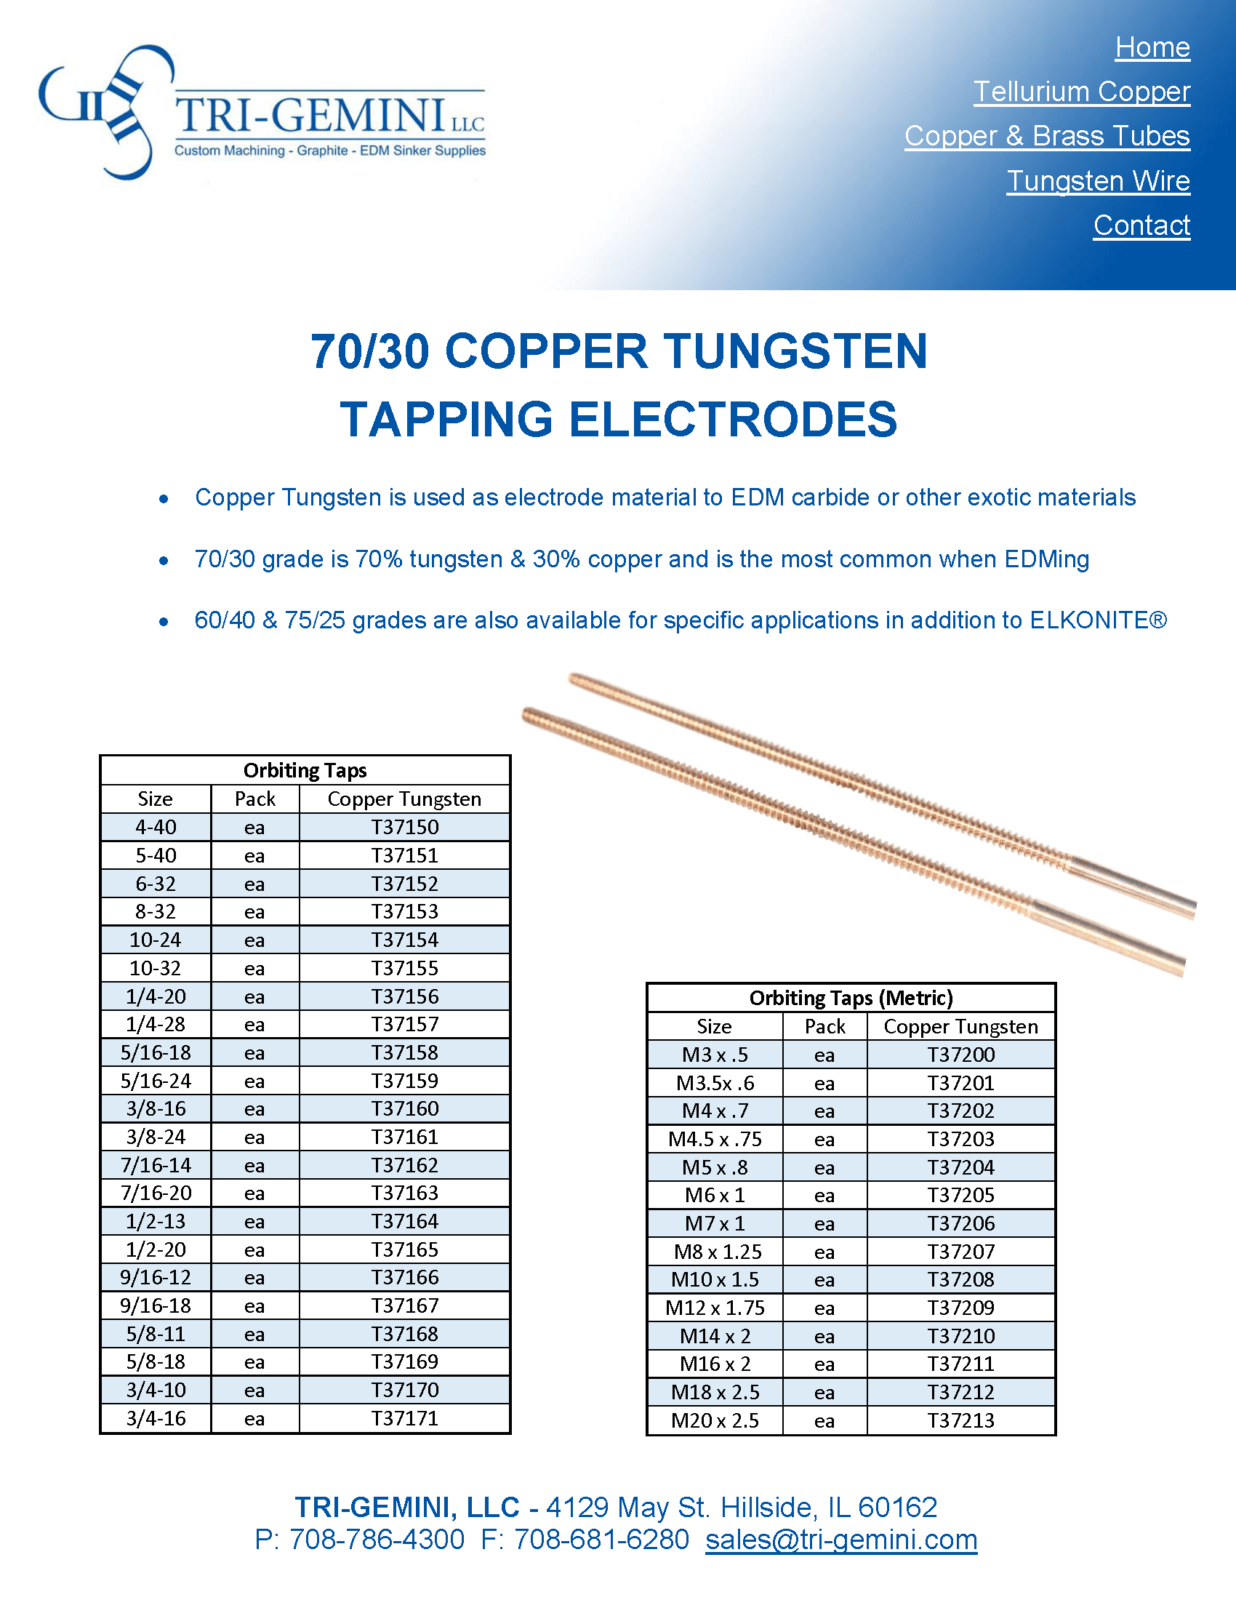 Copper Tungsten Tapping Electrodes